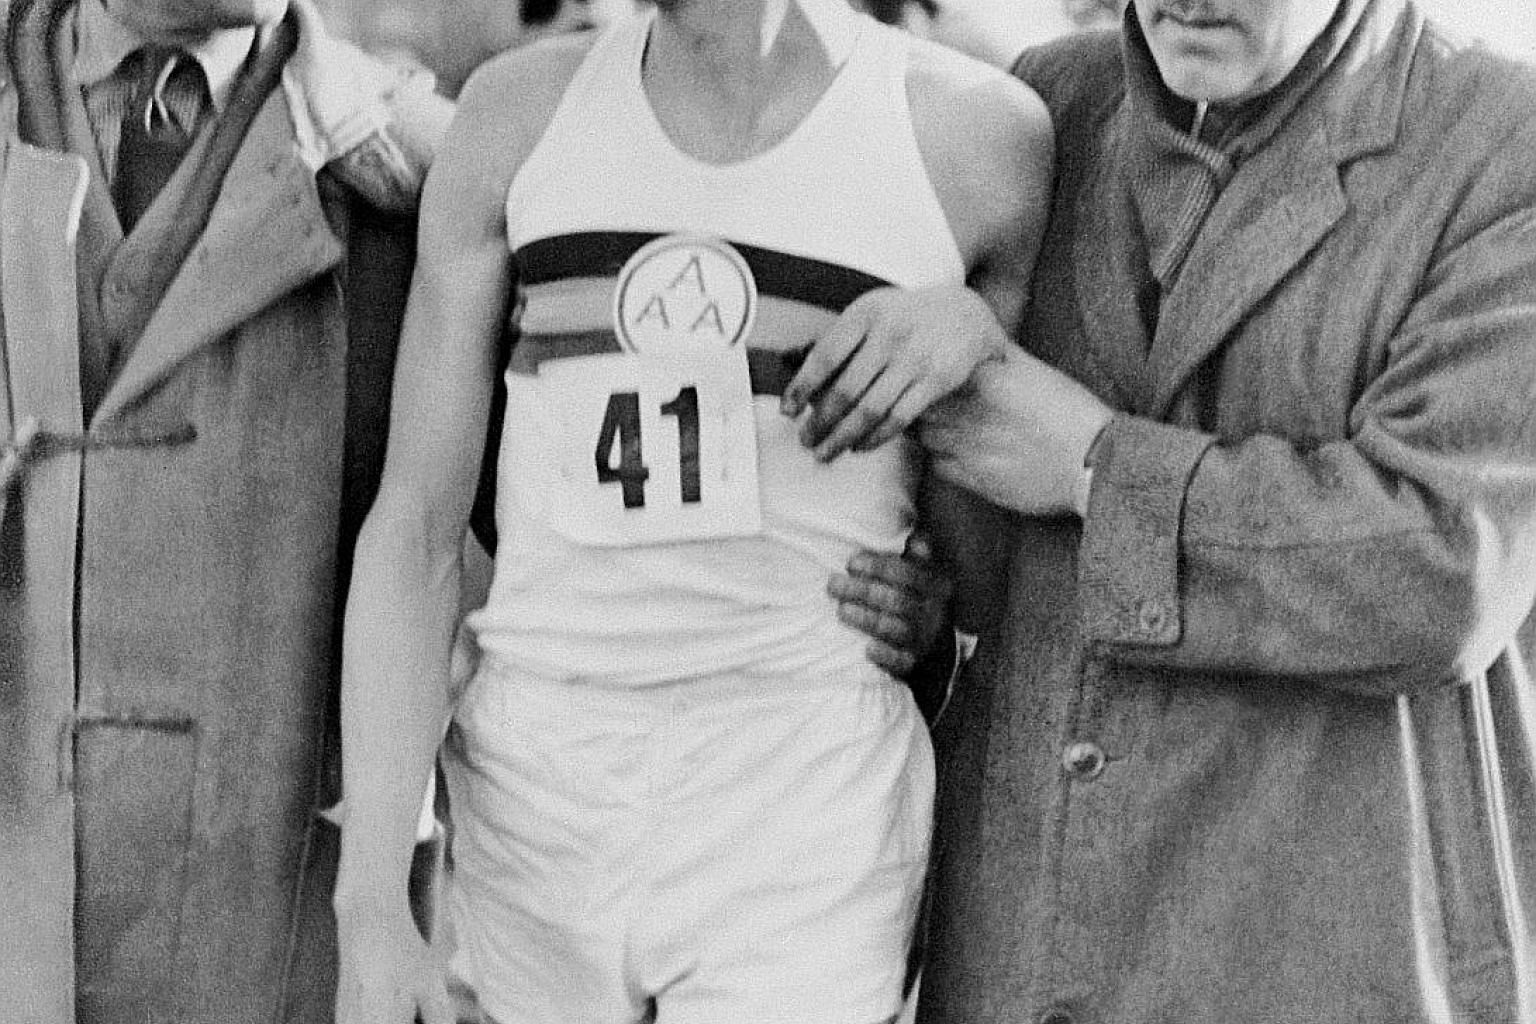 Briton Roger Bannister being helped by two officials after breaking the mile (1,609m) world record at Iffley Road Track in Oxford on May 7, 1954. The medical student clocked 3min 59.4sec to shatter the psychological ceiling of four minutes.